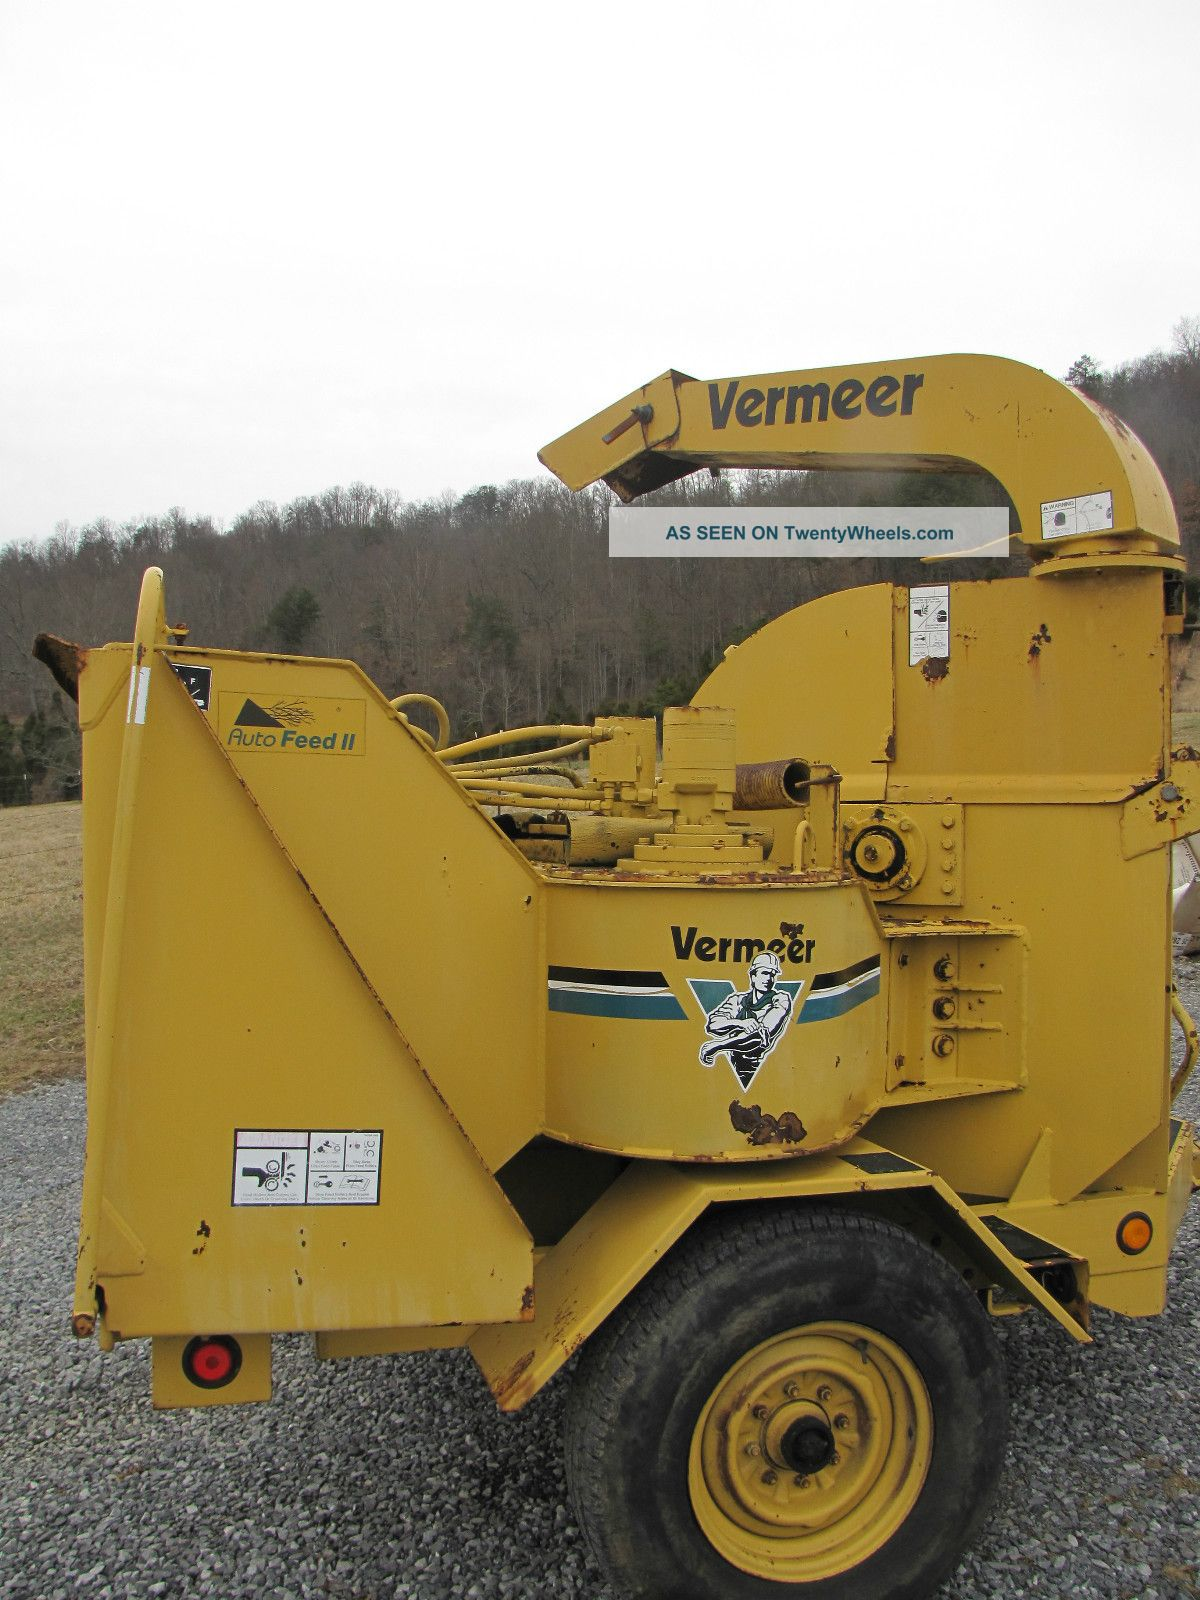 Vermeer 1250 Chipper Owners Manual on